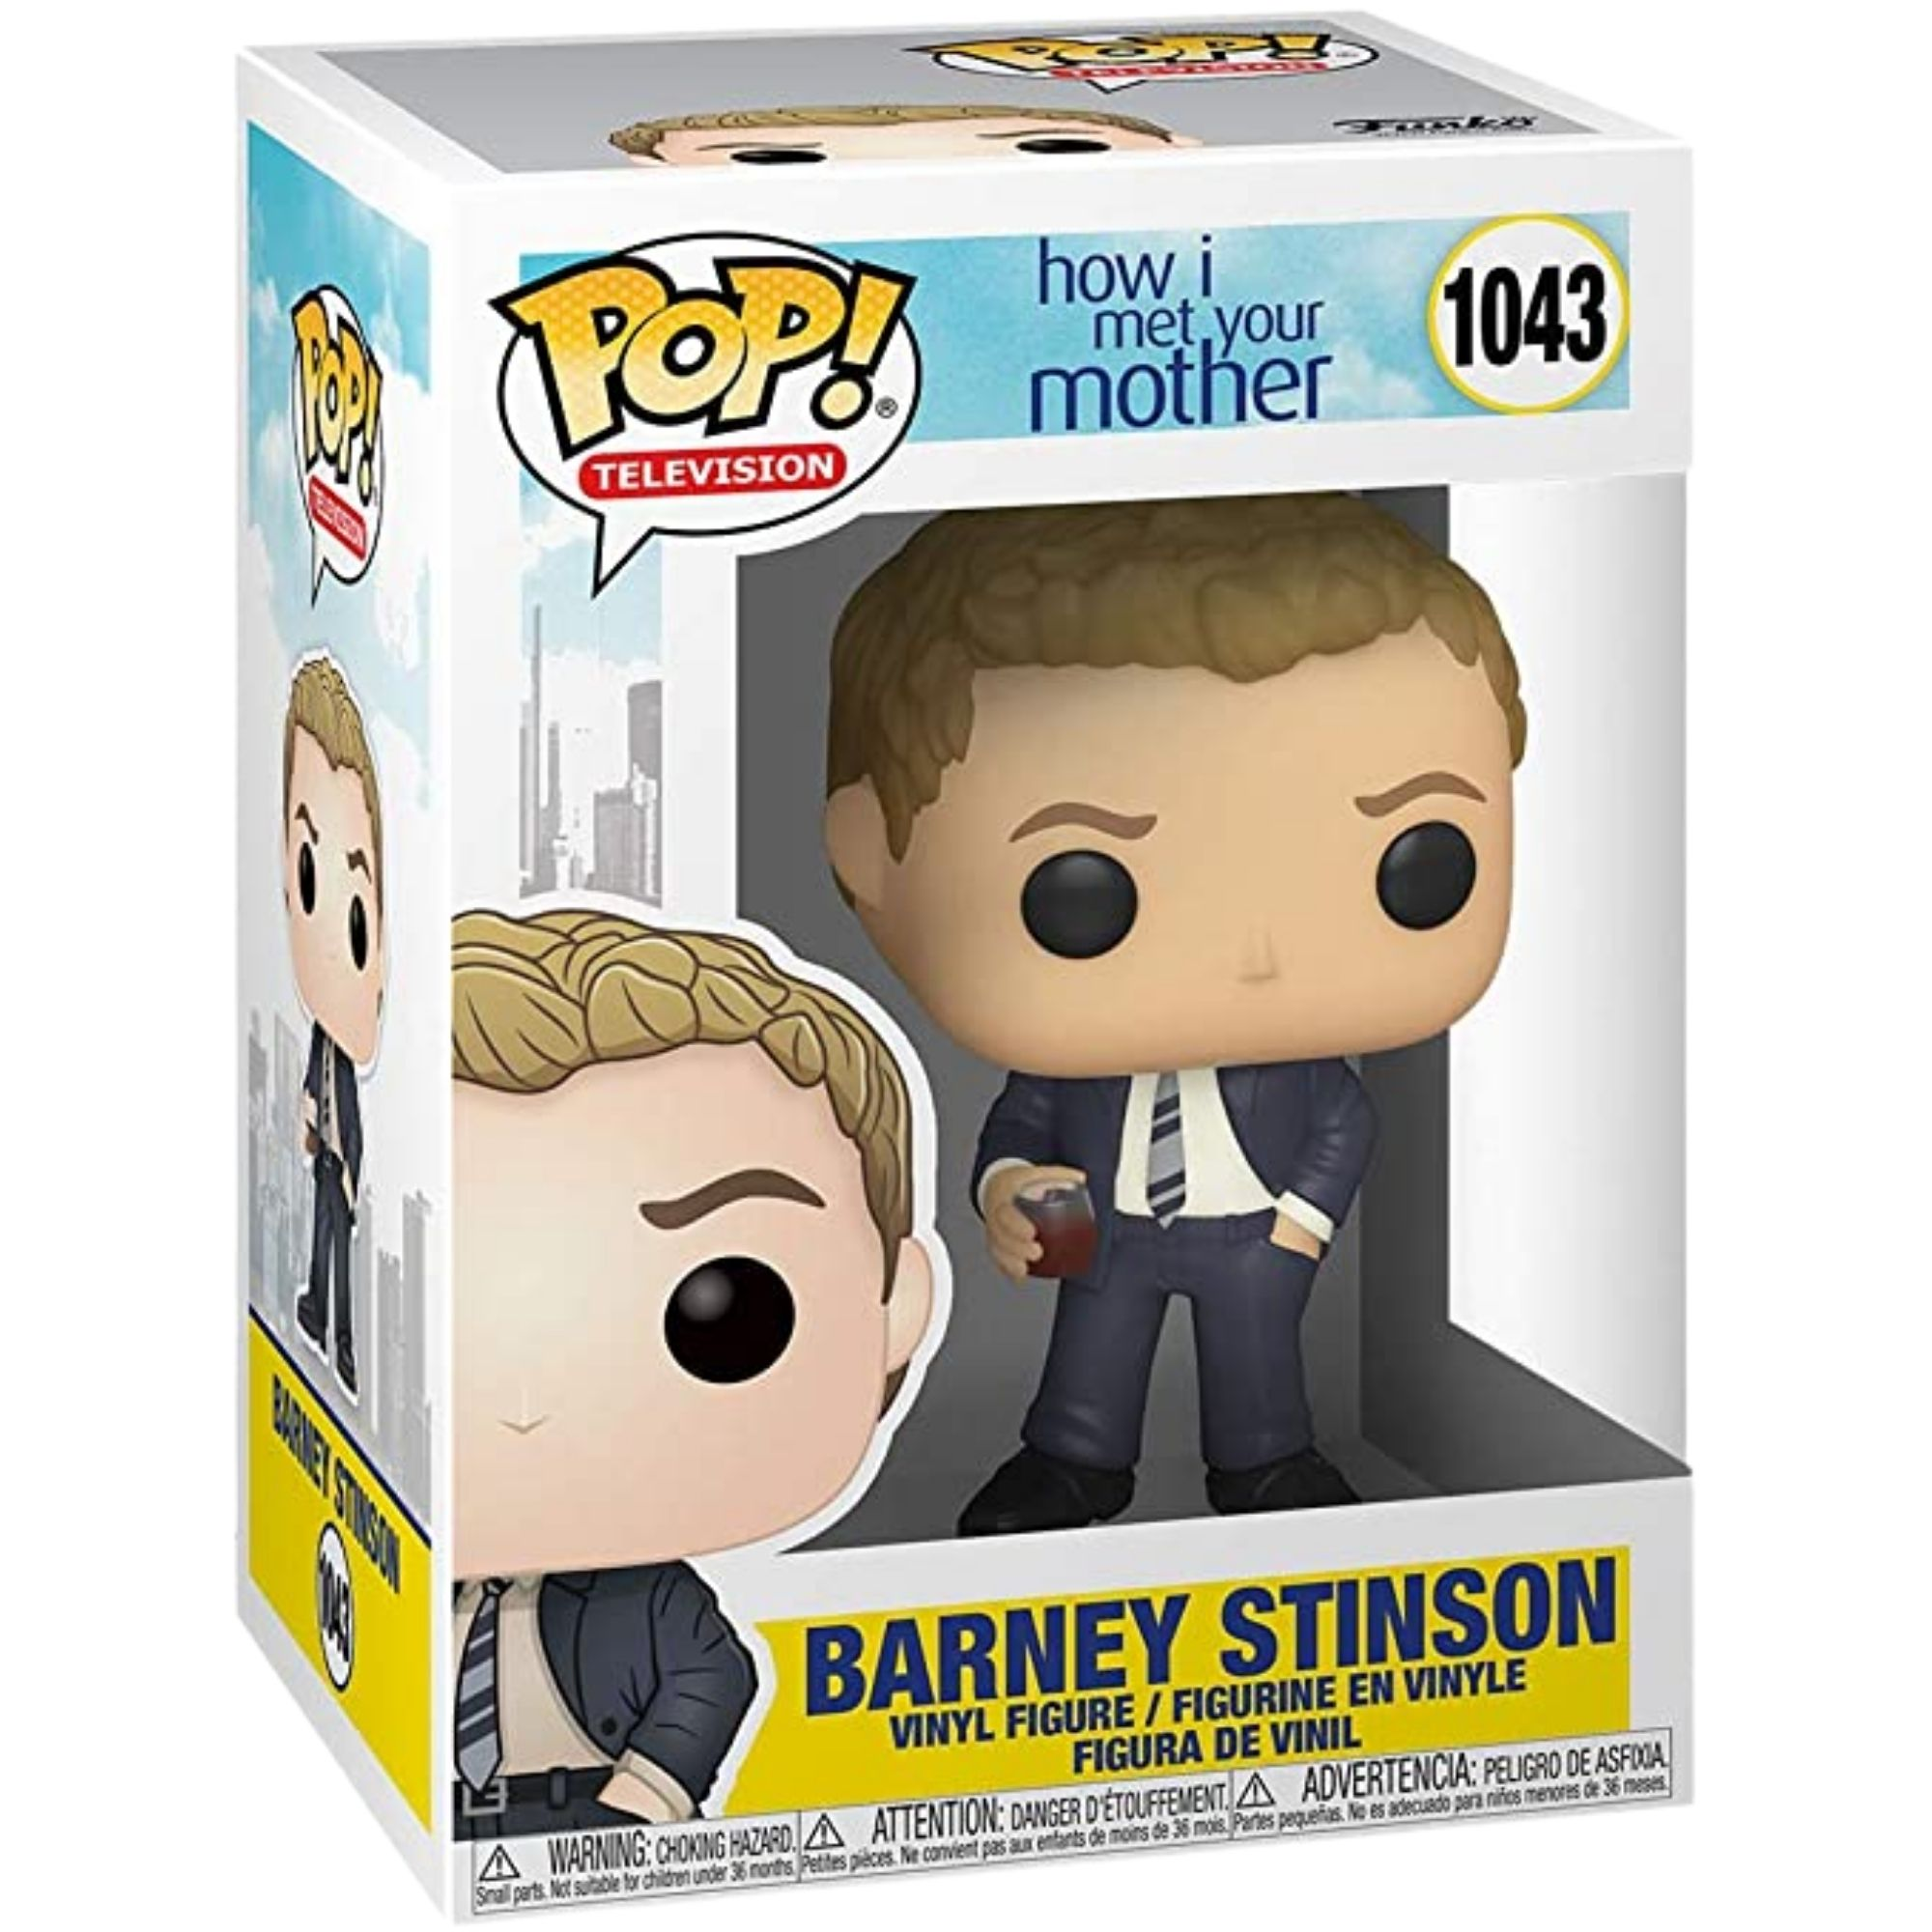 Funko Pop How I Met Your Mother Barney Stinson #1043  - Game Land Brinquedos